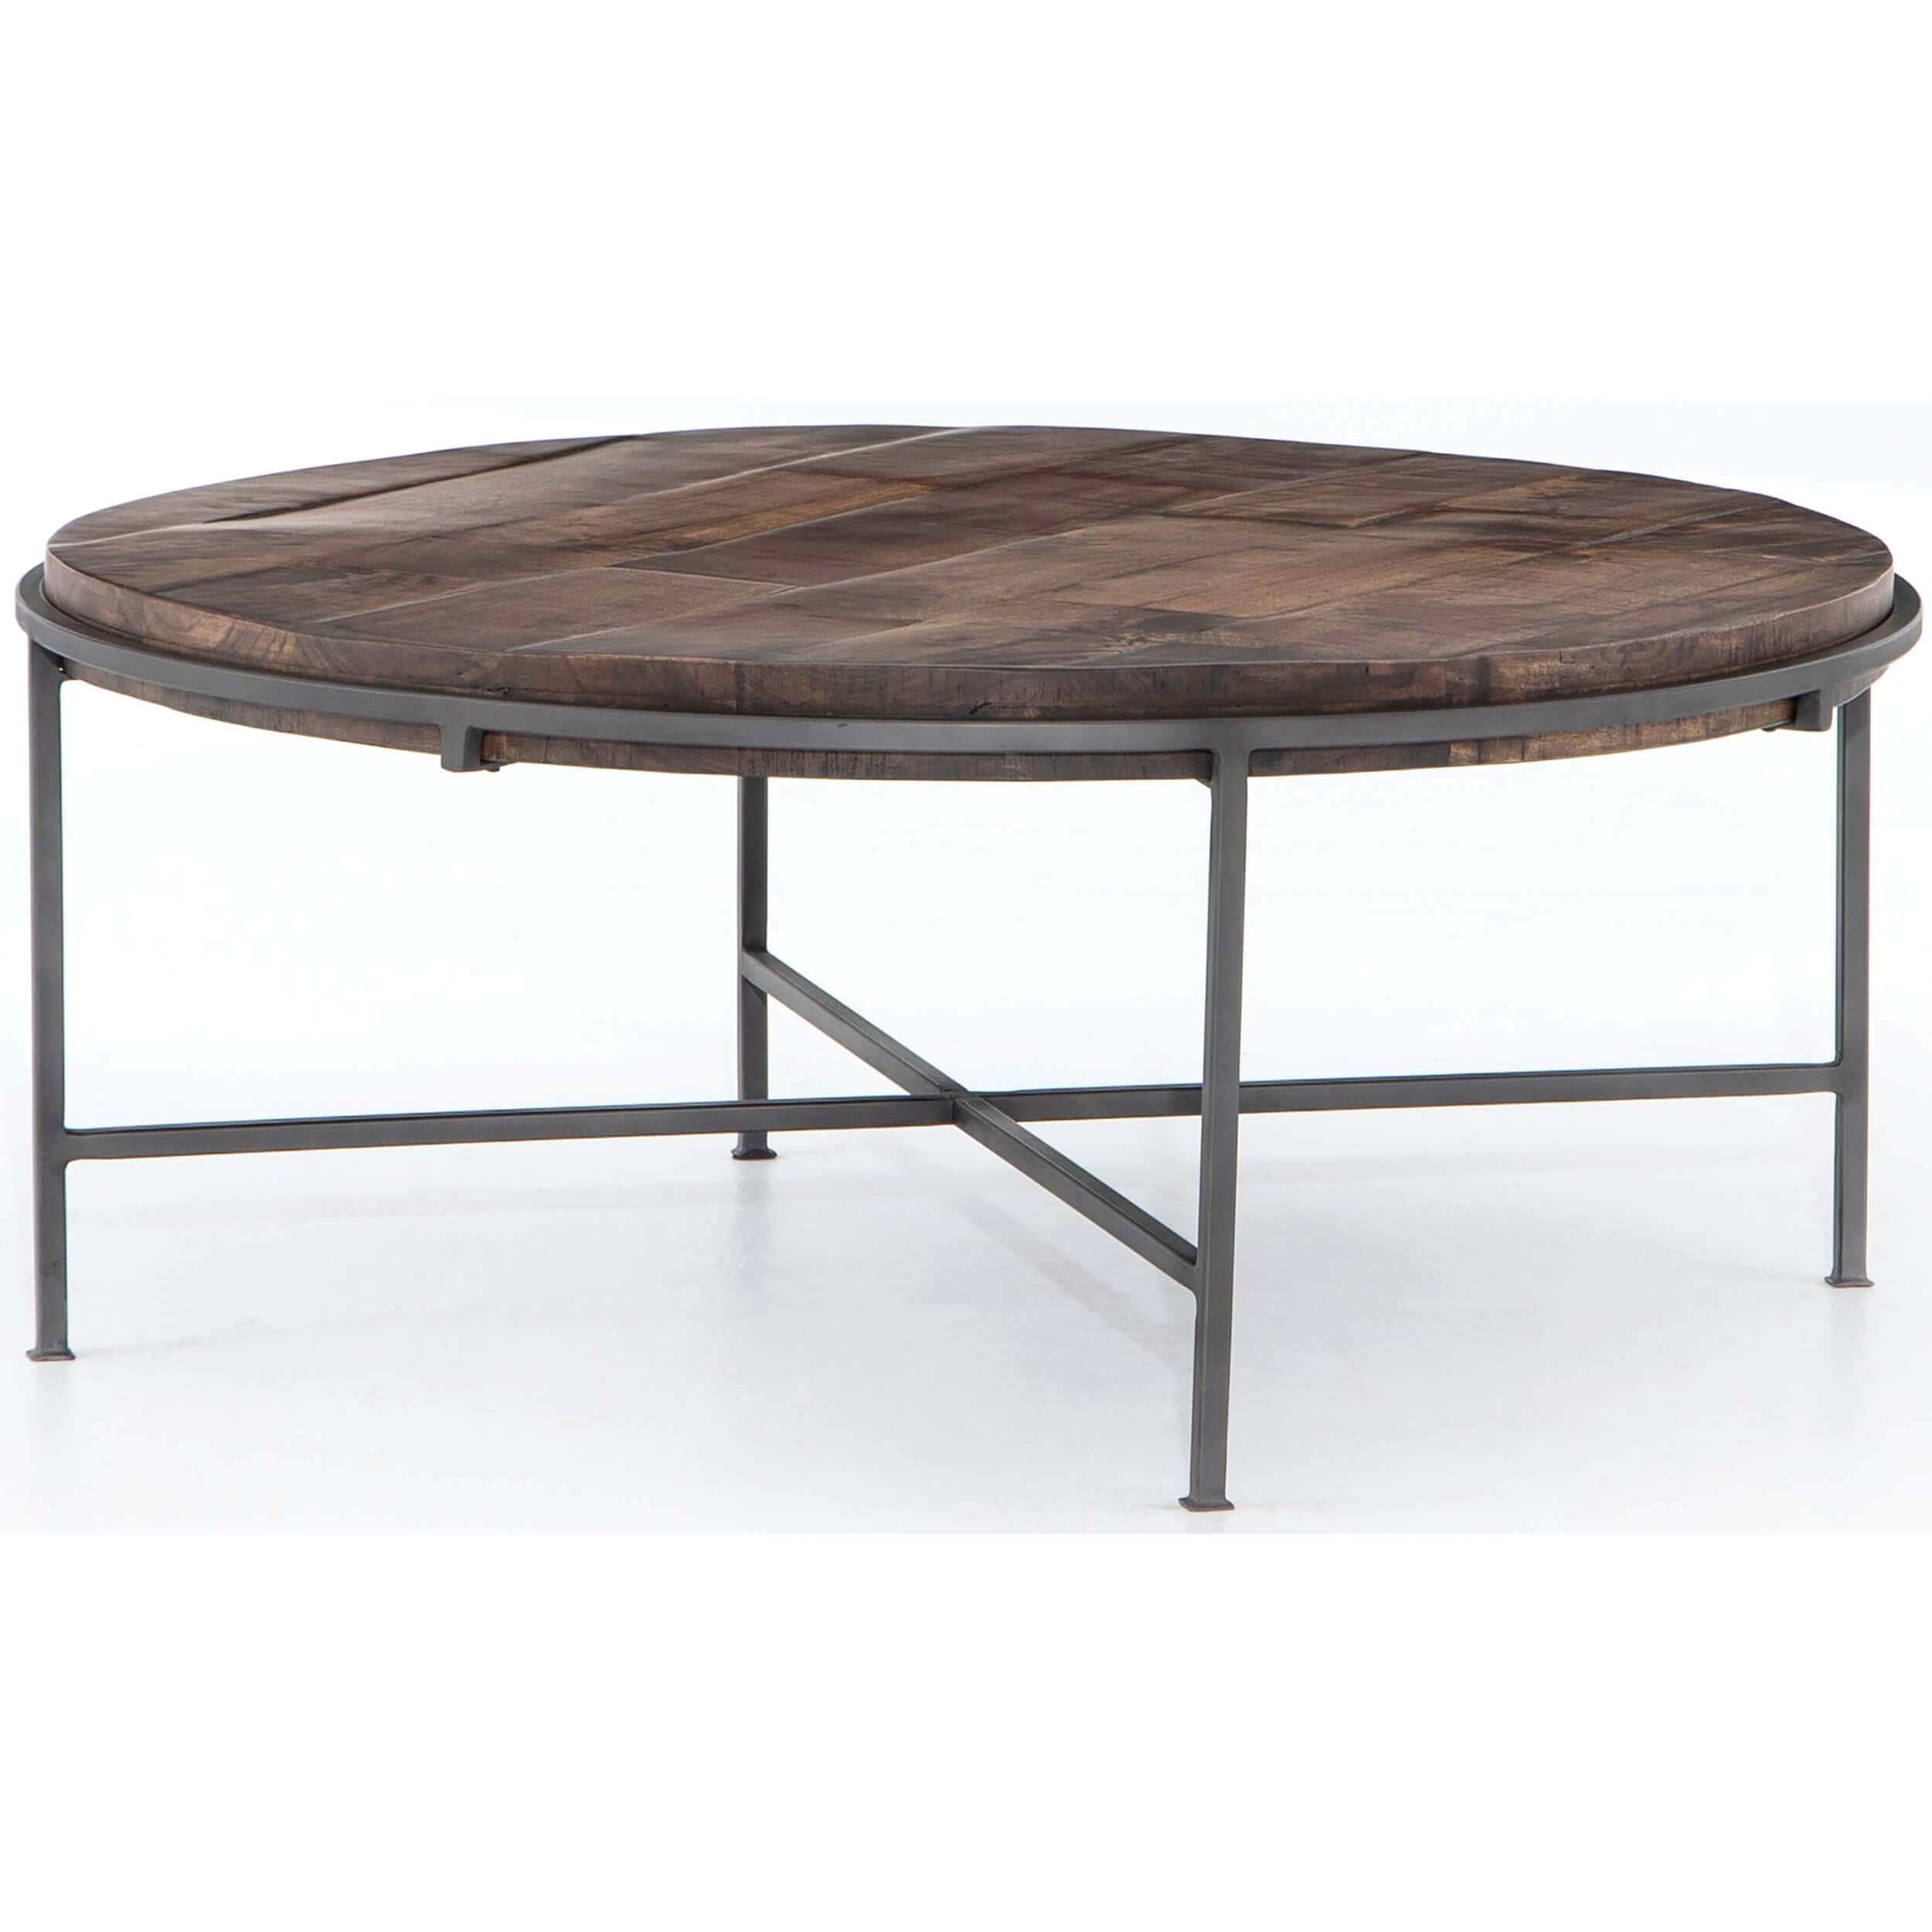 Simien Round Coffee Table Round Coffee Table Coffee Table Coffee Table Square [ 2500 x 2500 Pixel ]